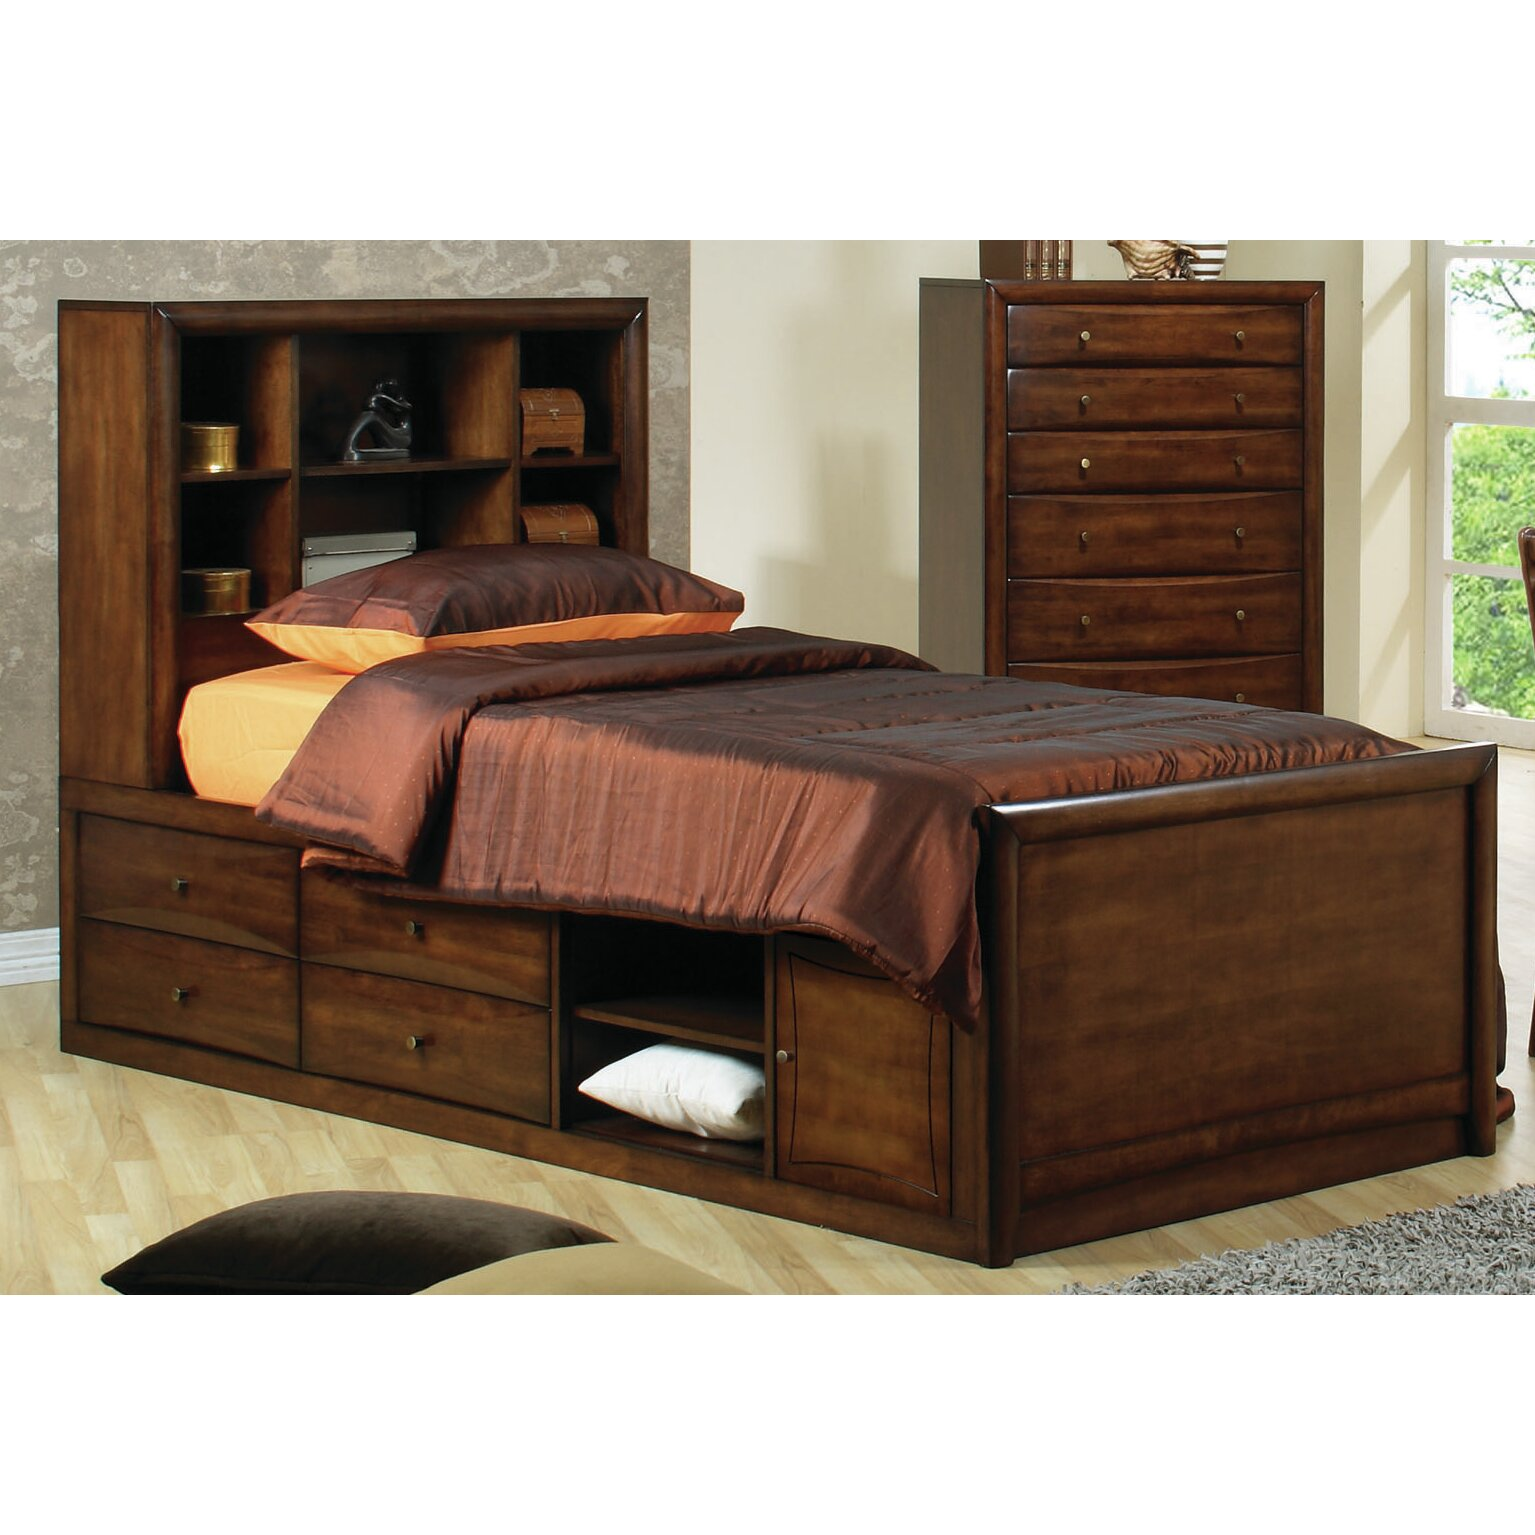 Darby Home Co Panel Customizable Bedroom Set & Reviews